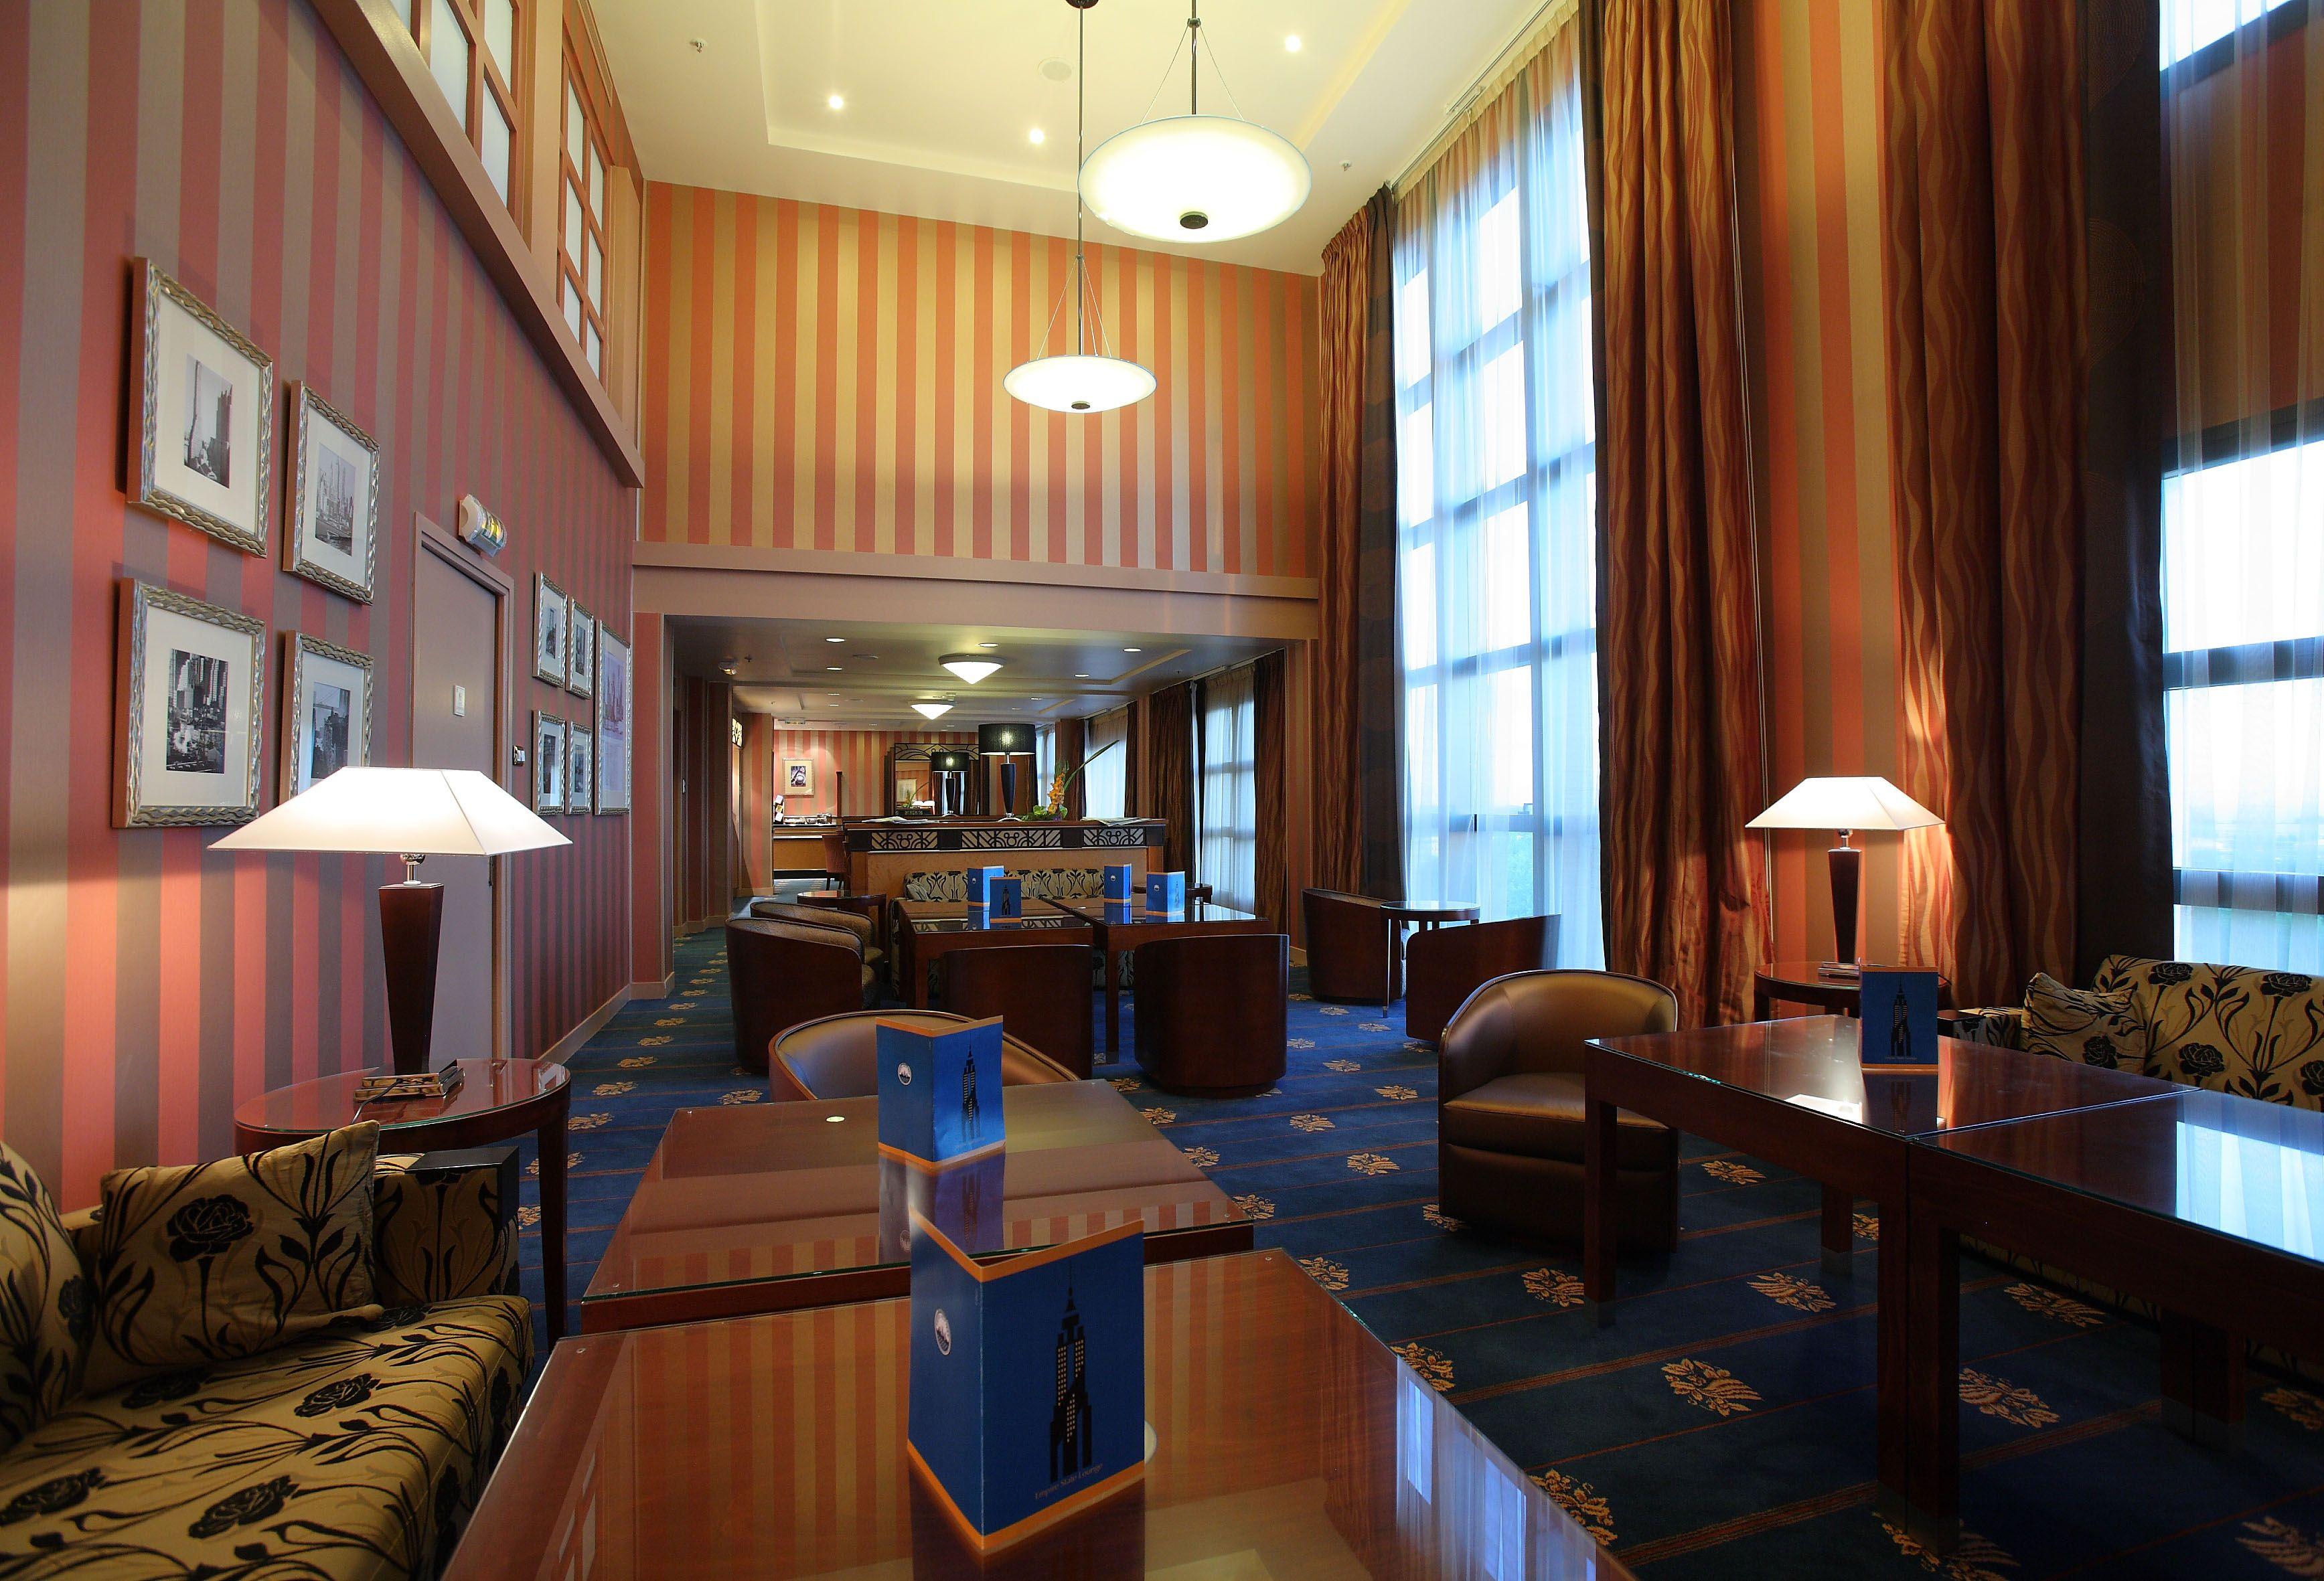 Disney Hotels Hotel New York Empire State Club Lounge Disneyland Paris